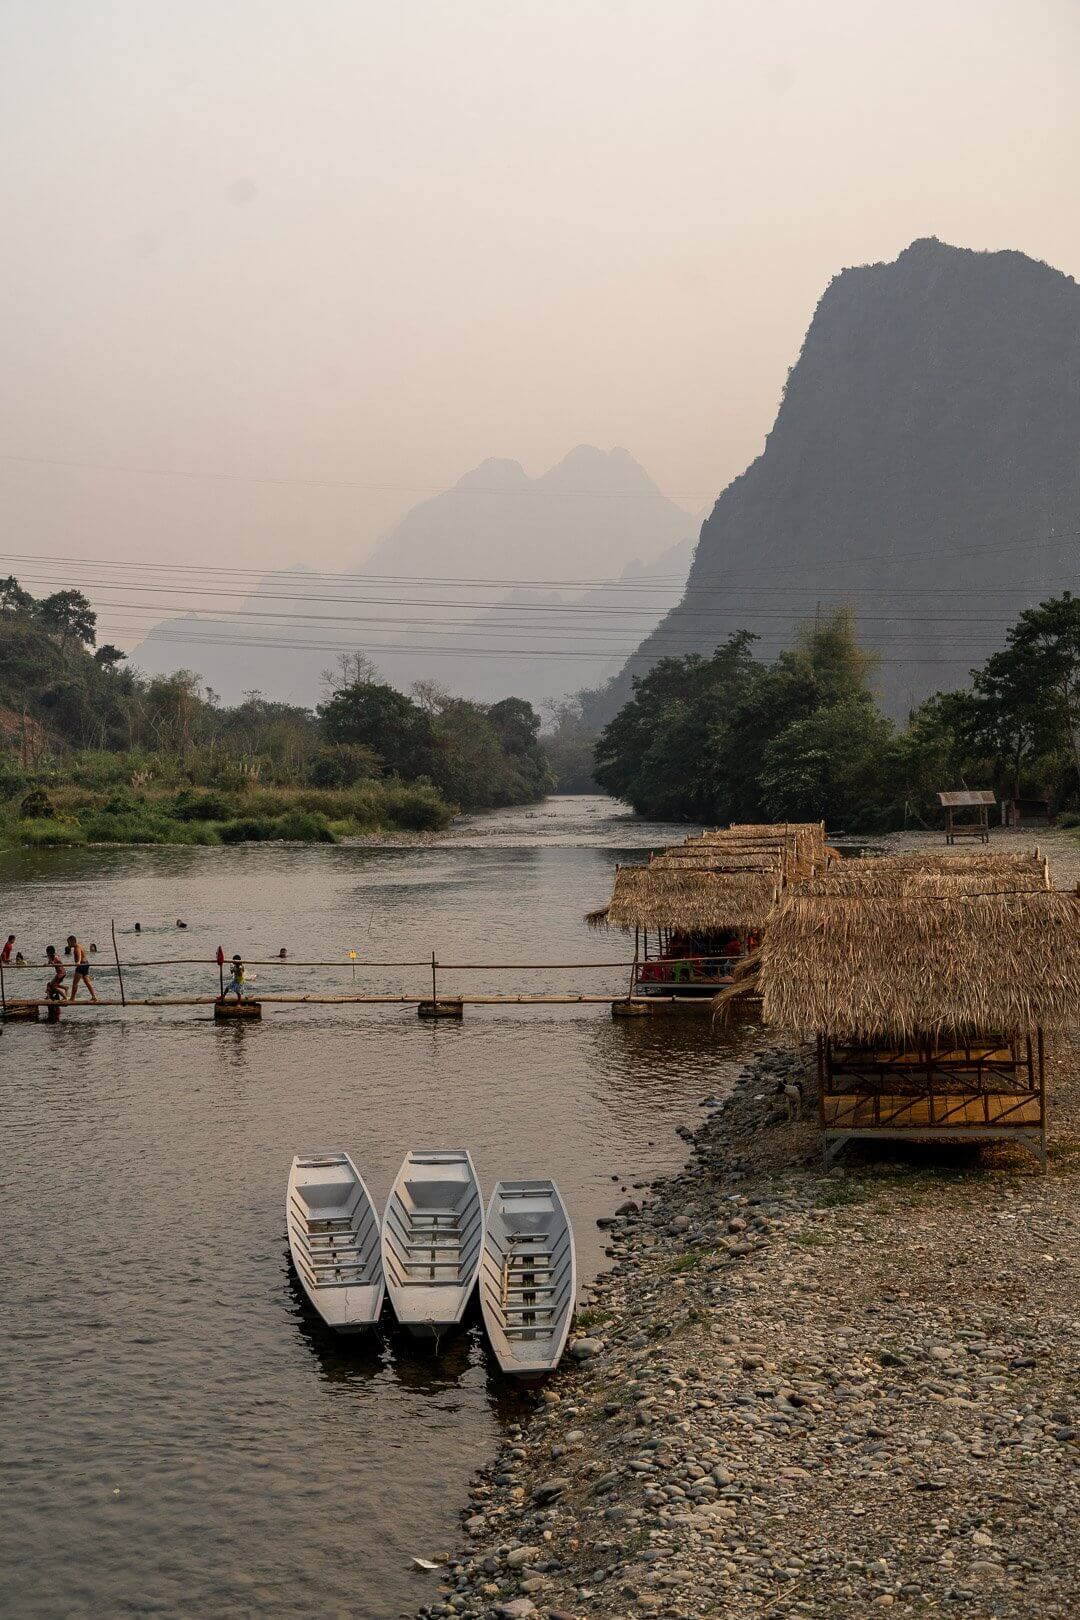 The bamboo bridge at the Pha Tang village near Vang Vieng, Laos